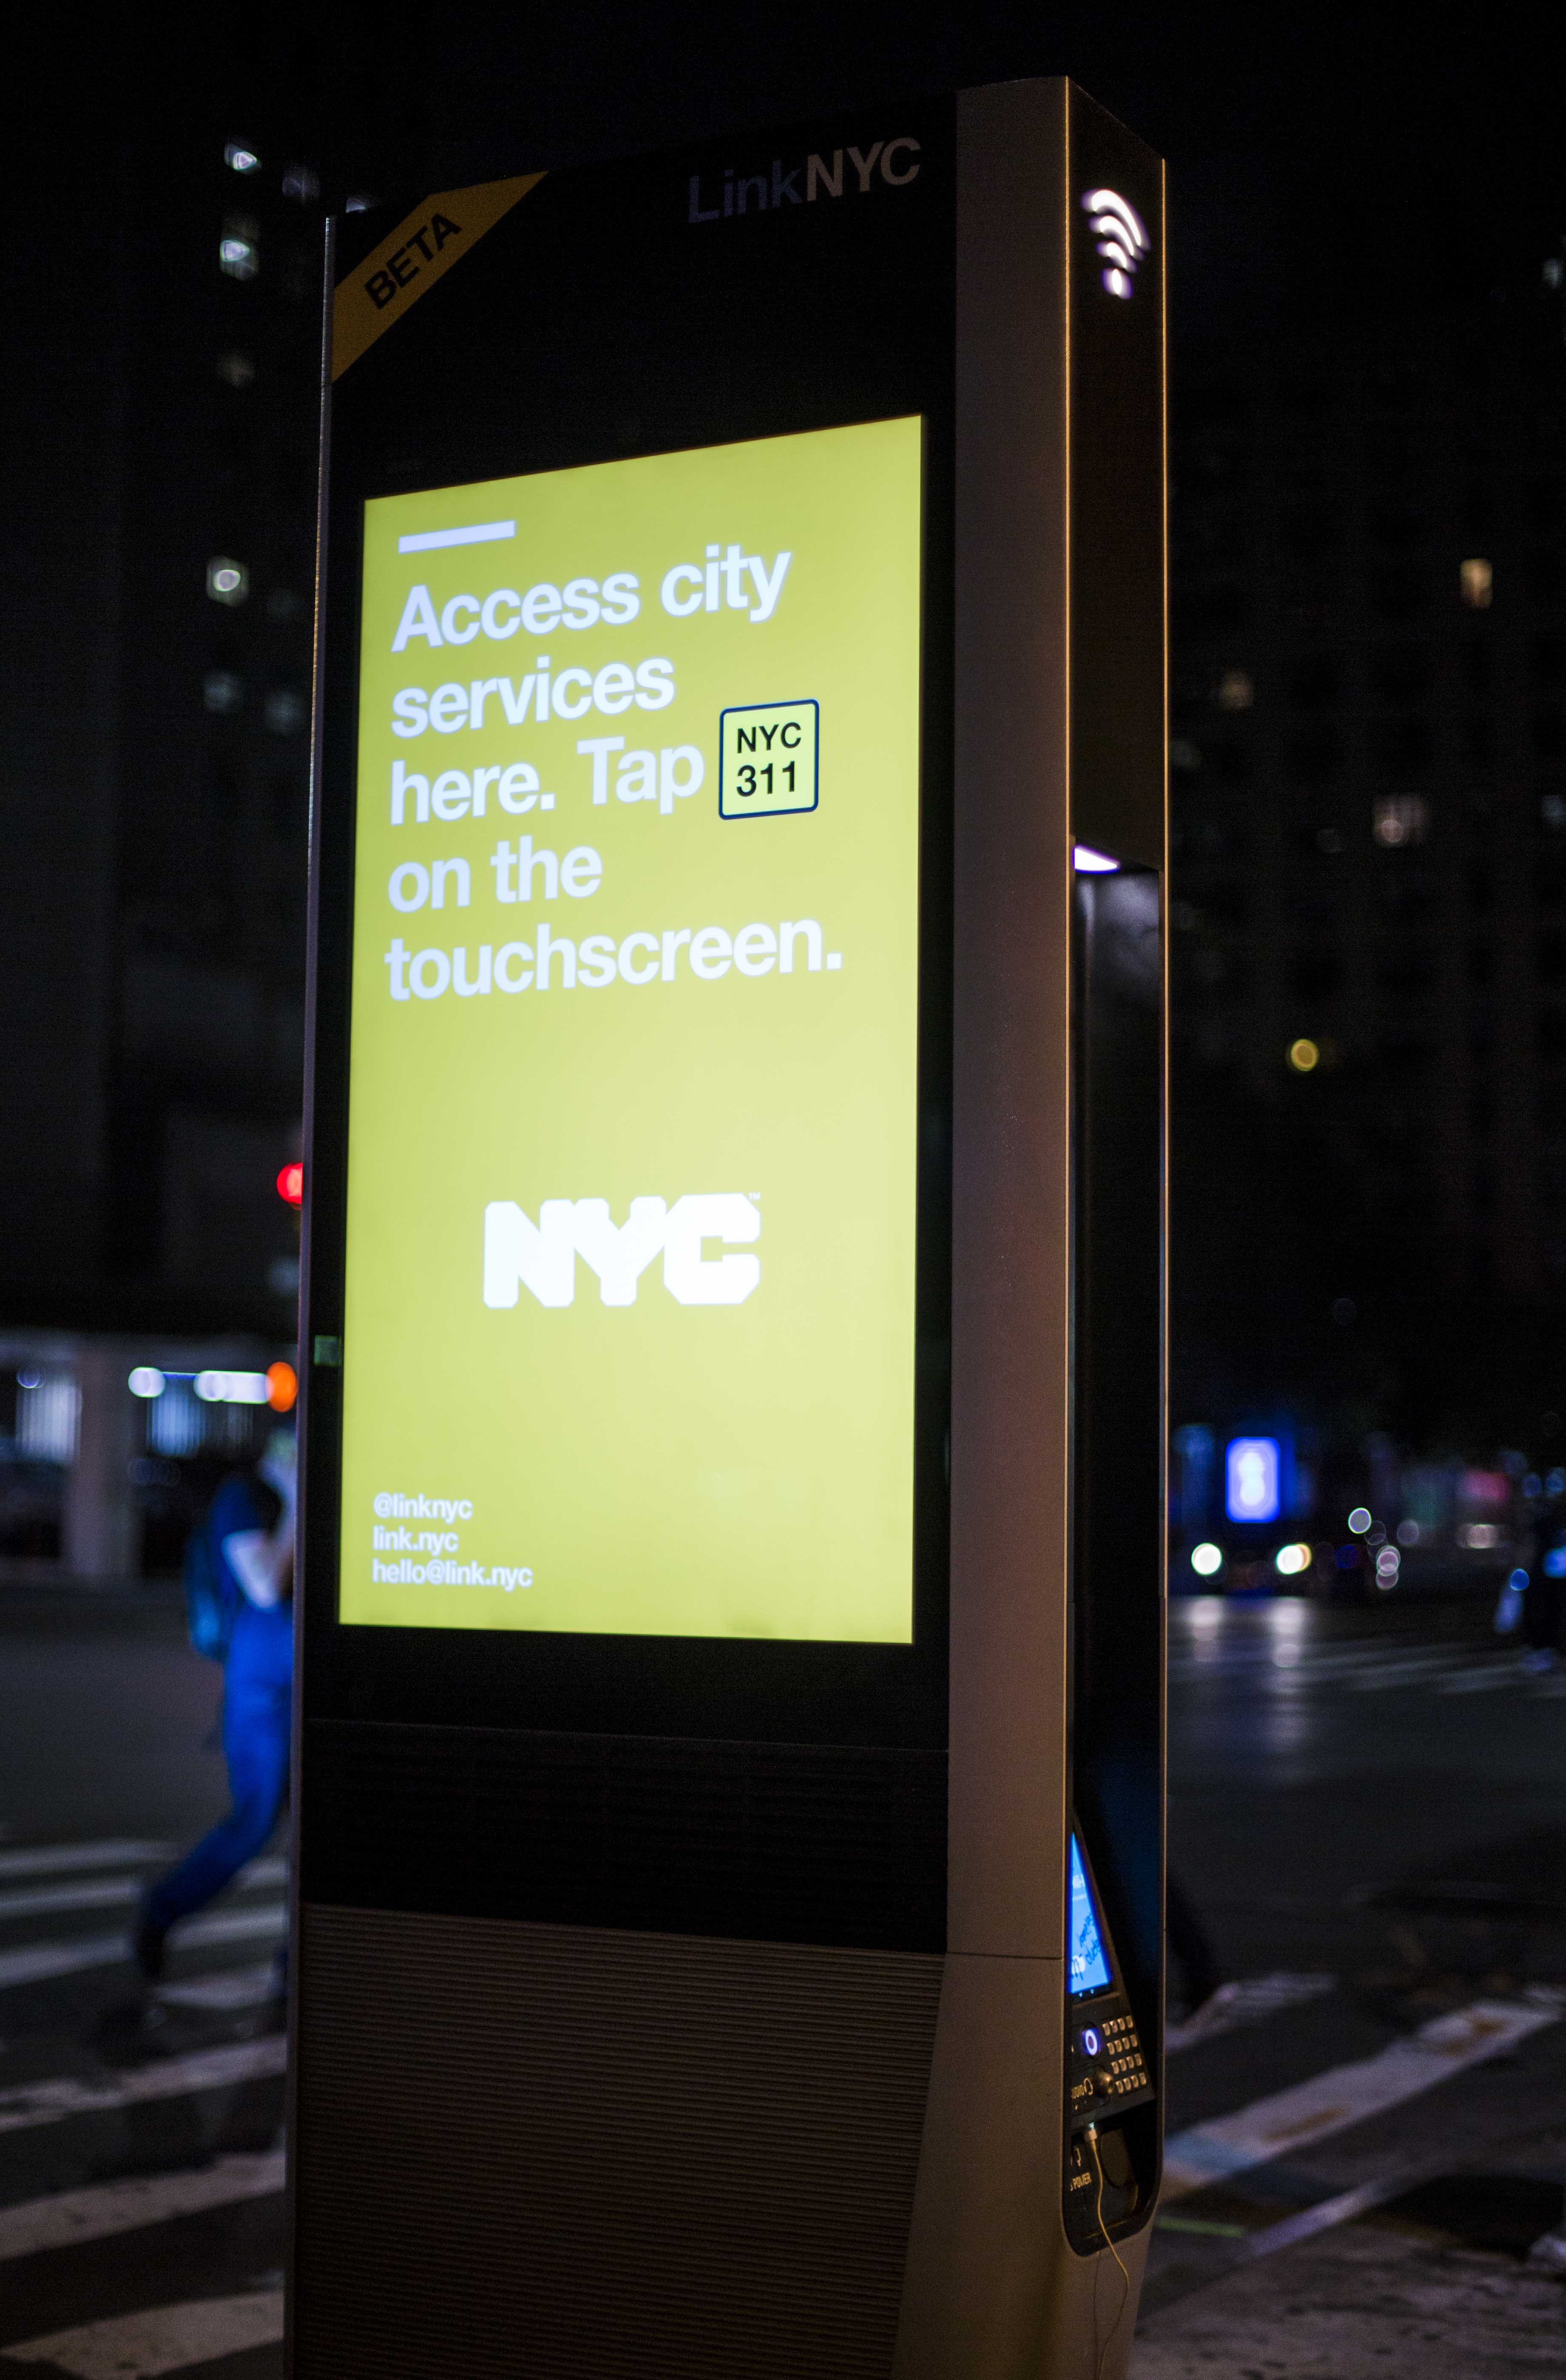 LinkNYC stations have been installed on the street along 3rd Ave to provide city services, however they've been used for more than just quick WiFi access.